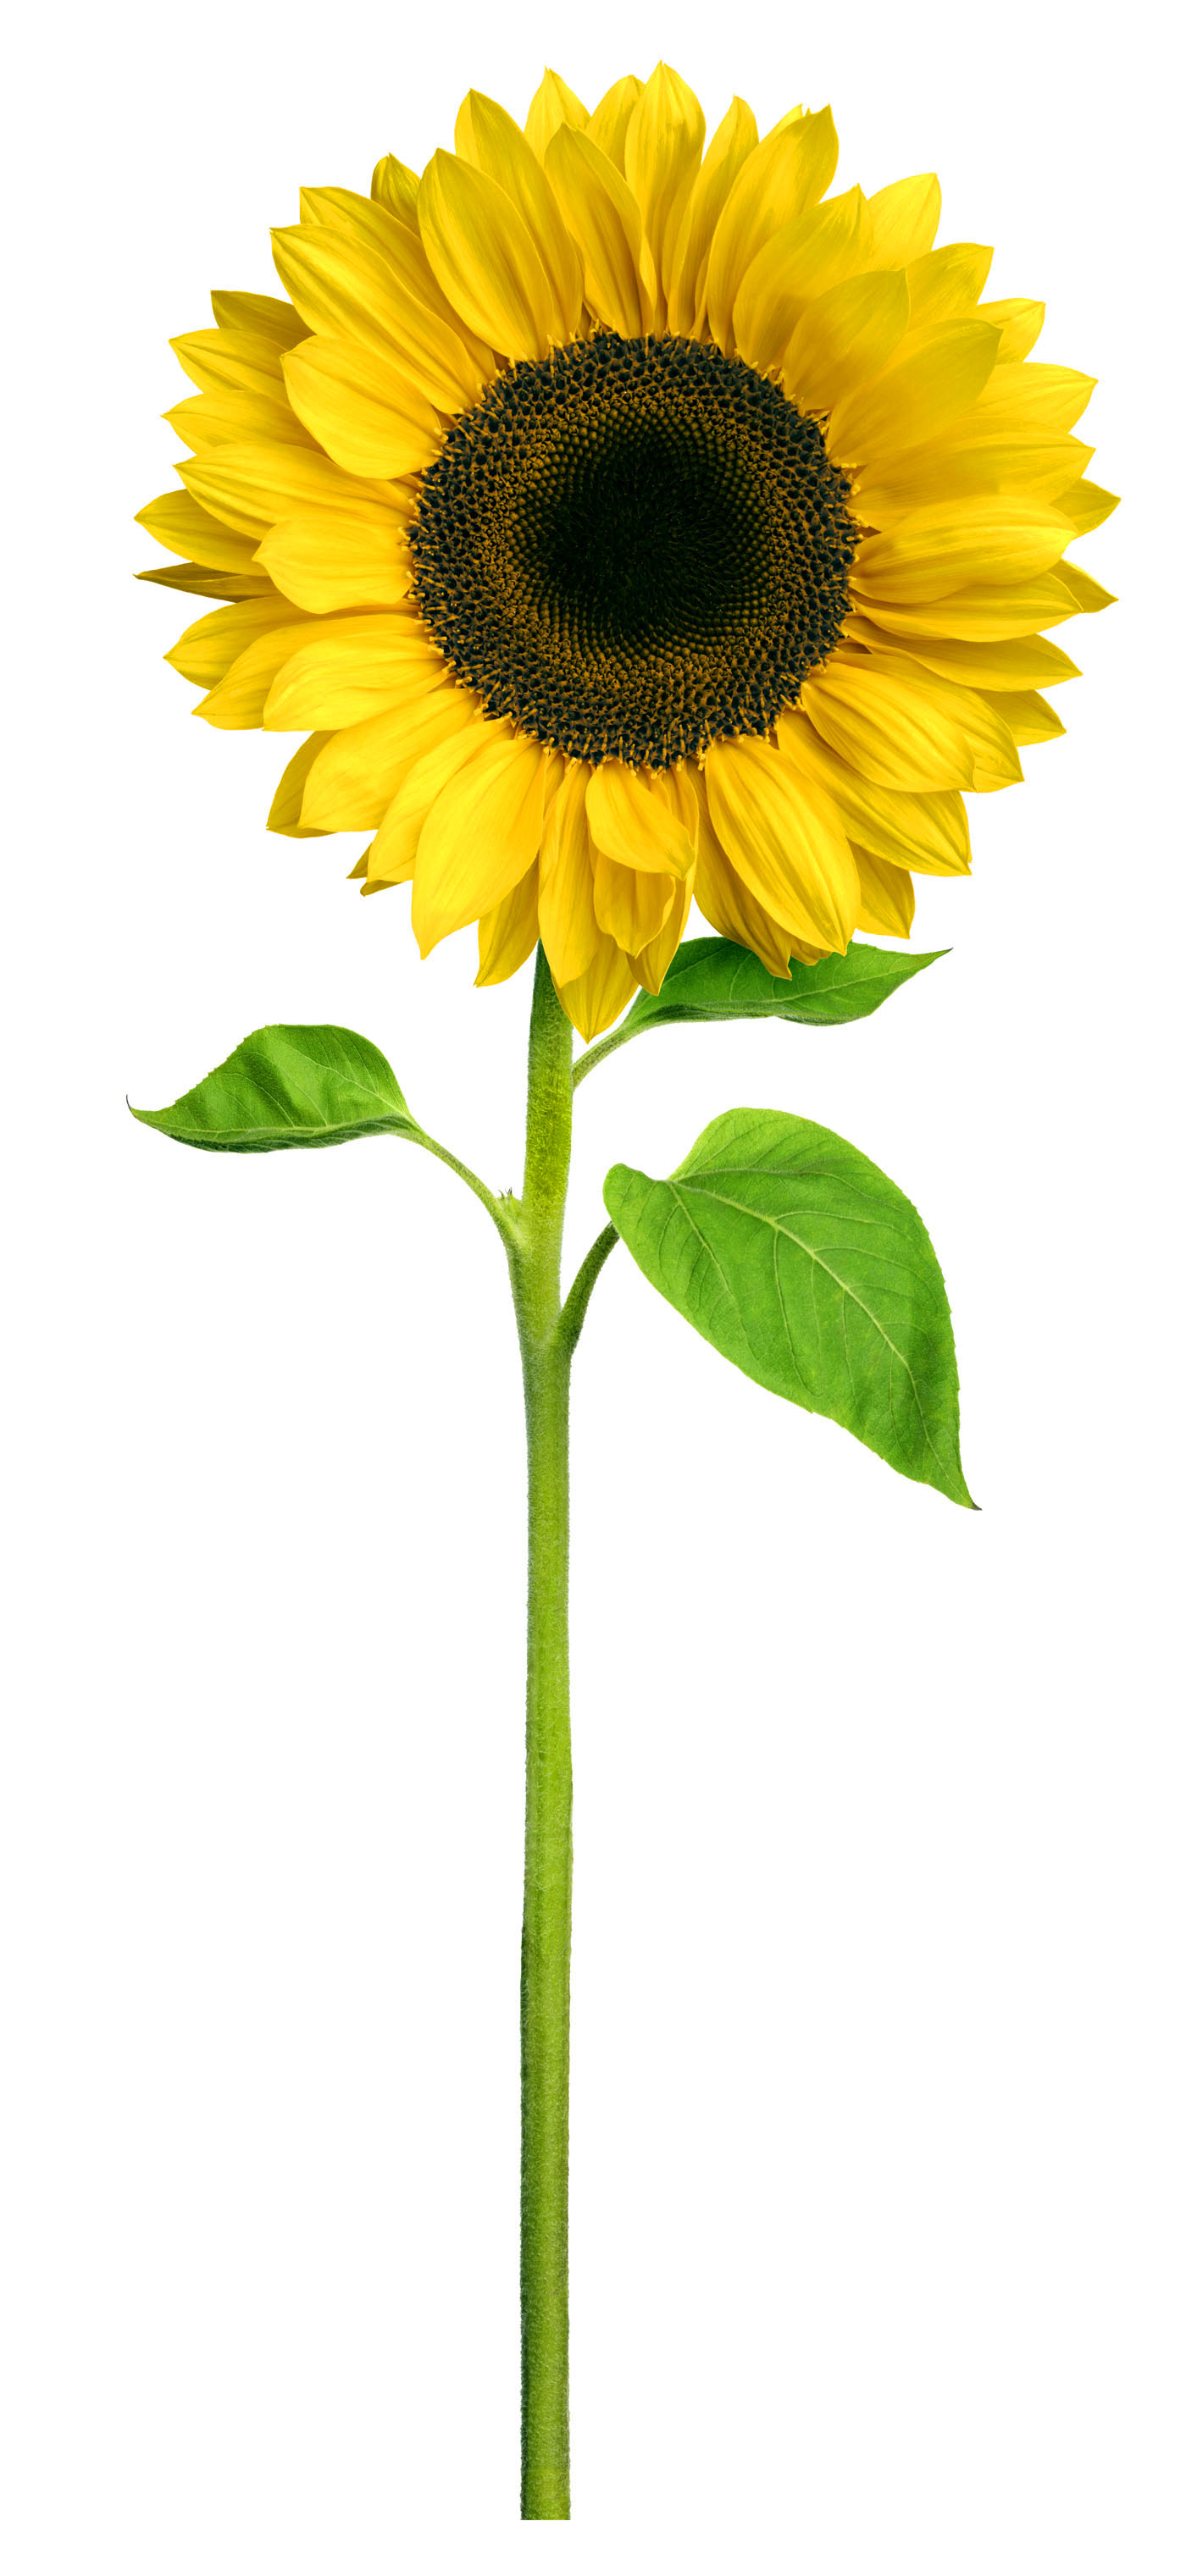 Sunflower clipart tall sunflower. Amazing hd wallpapers collection